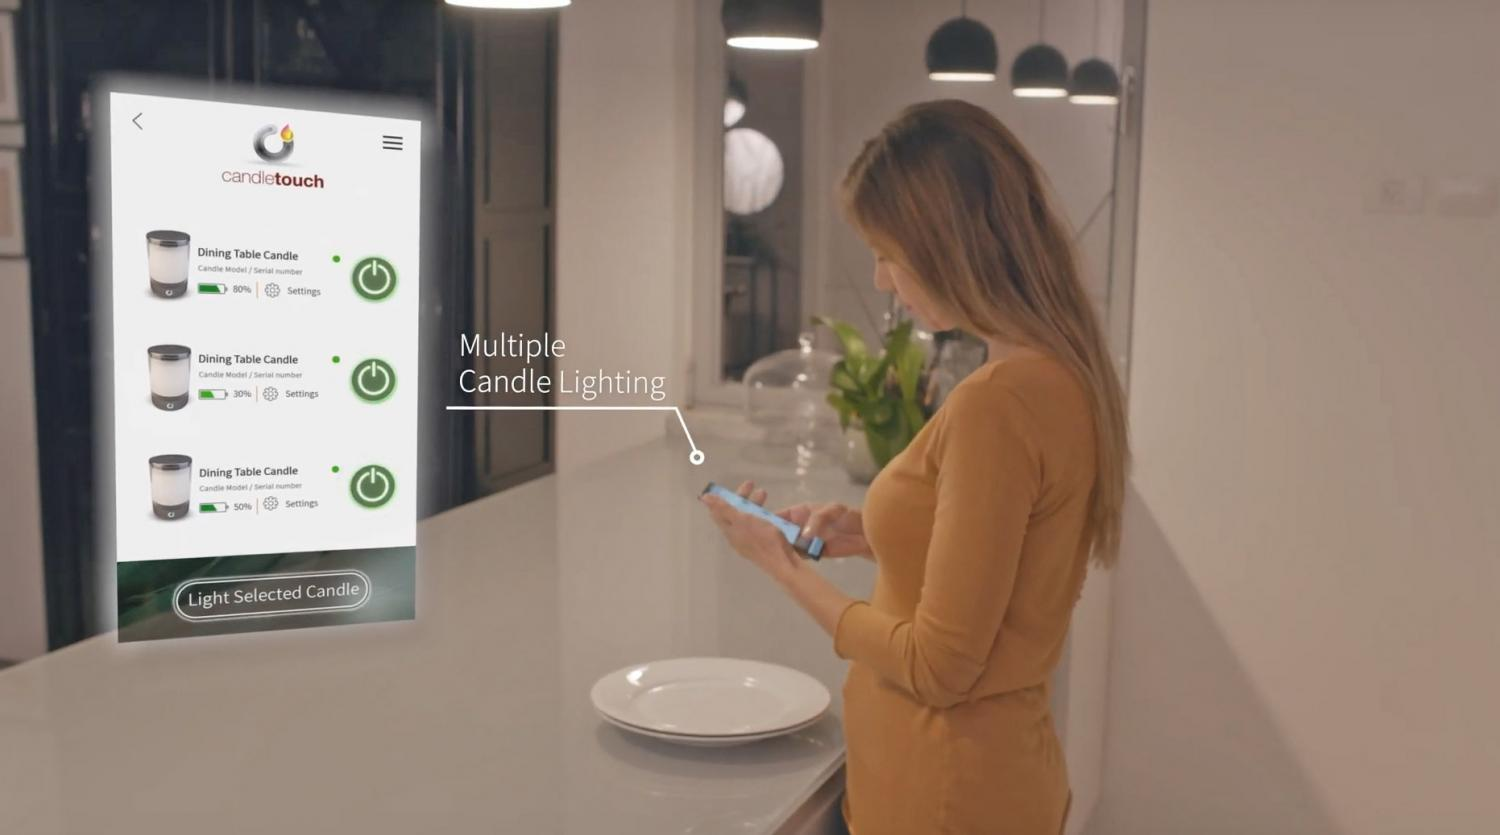 Candle Touch Smart Candle Ignites From Smart Phone - Light candle remotely from phone